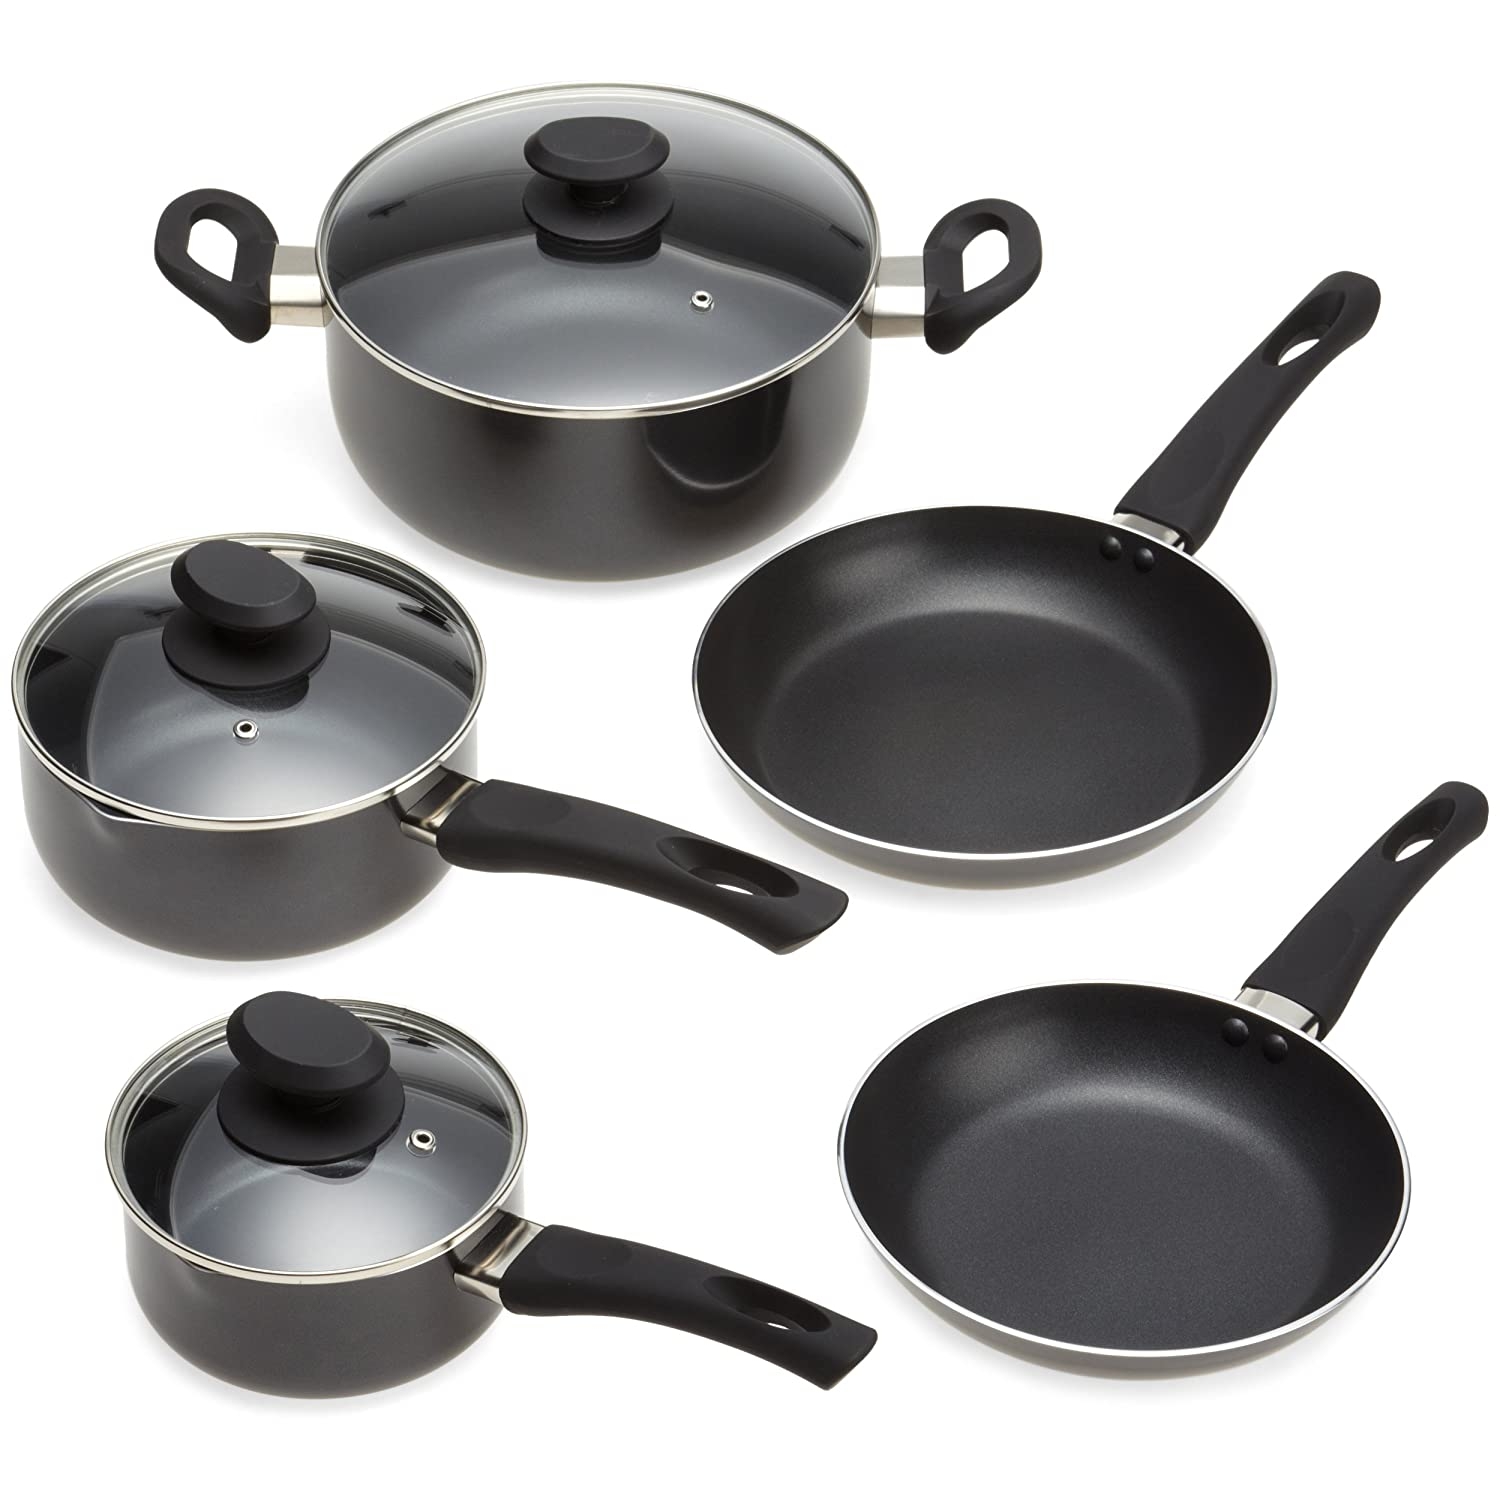 Ecolution Eco Friendly Cookware